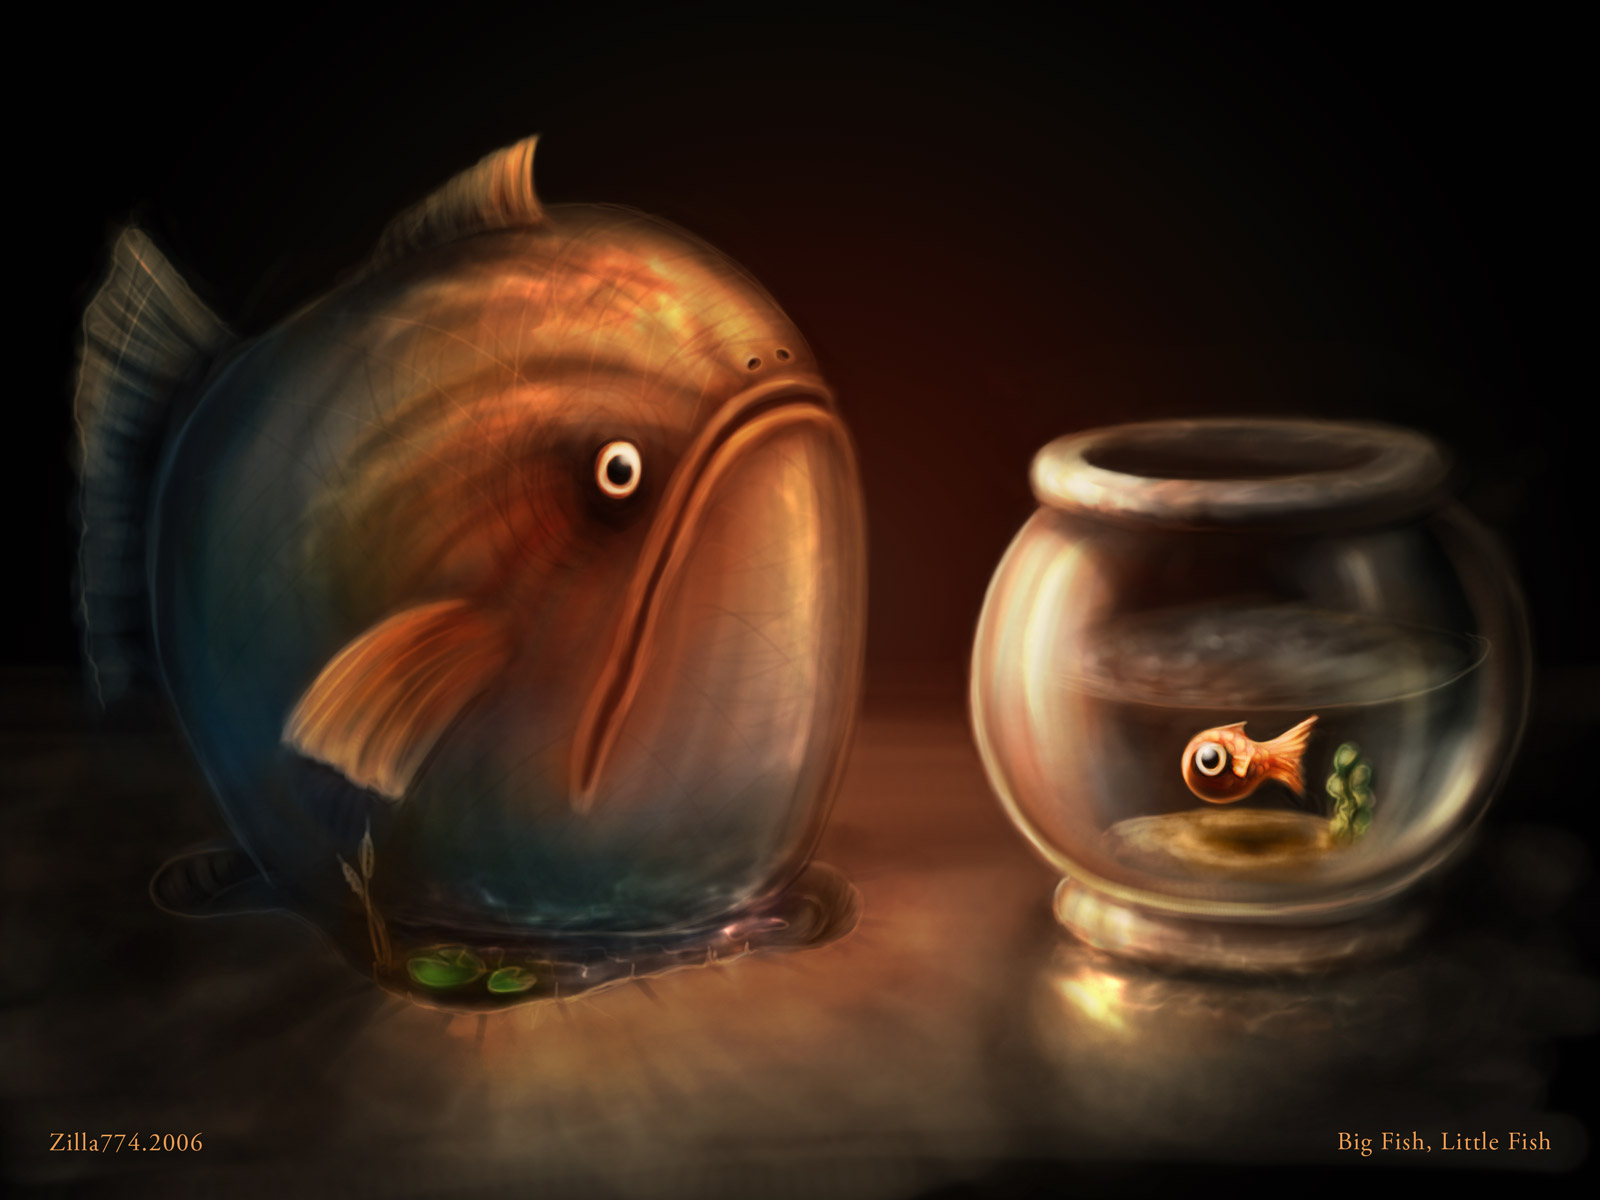 Big fish little fish by zilla774 on deviantart for Big fish little fish